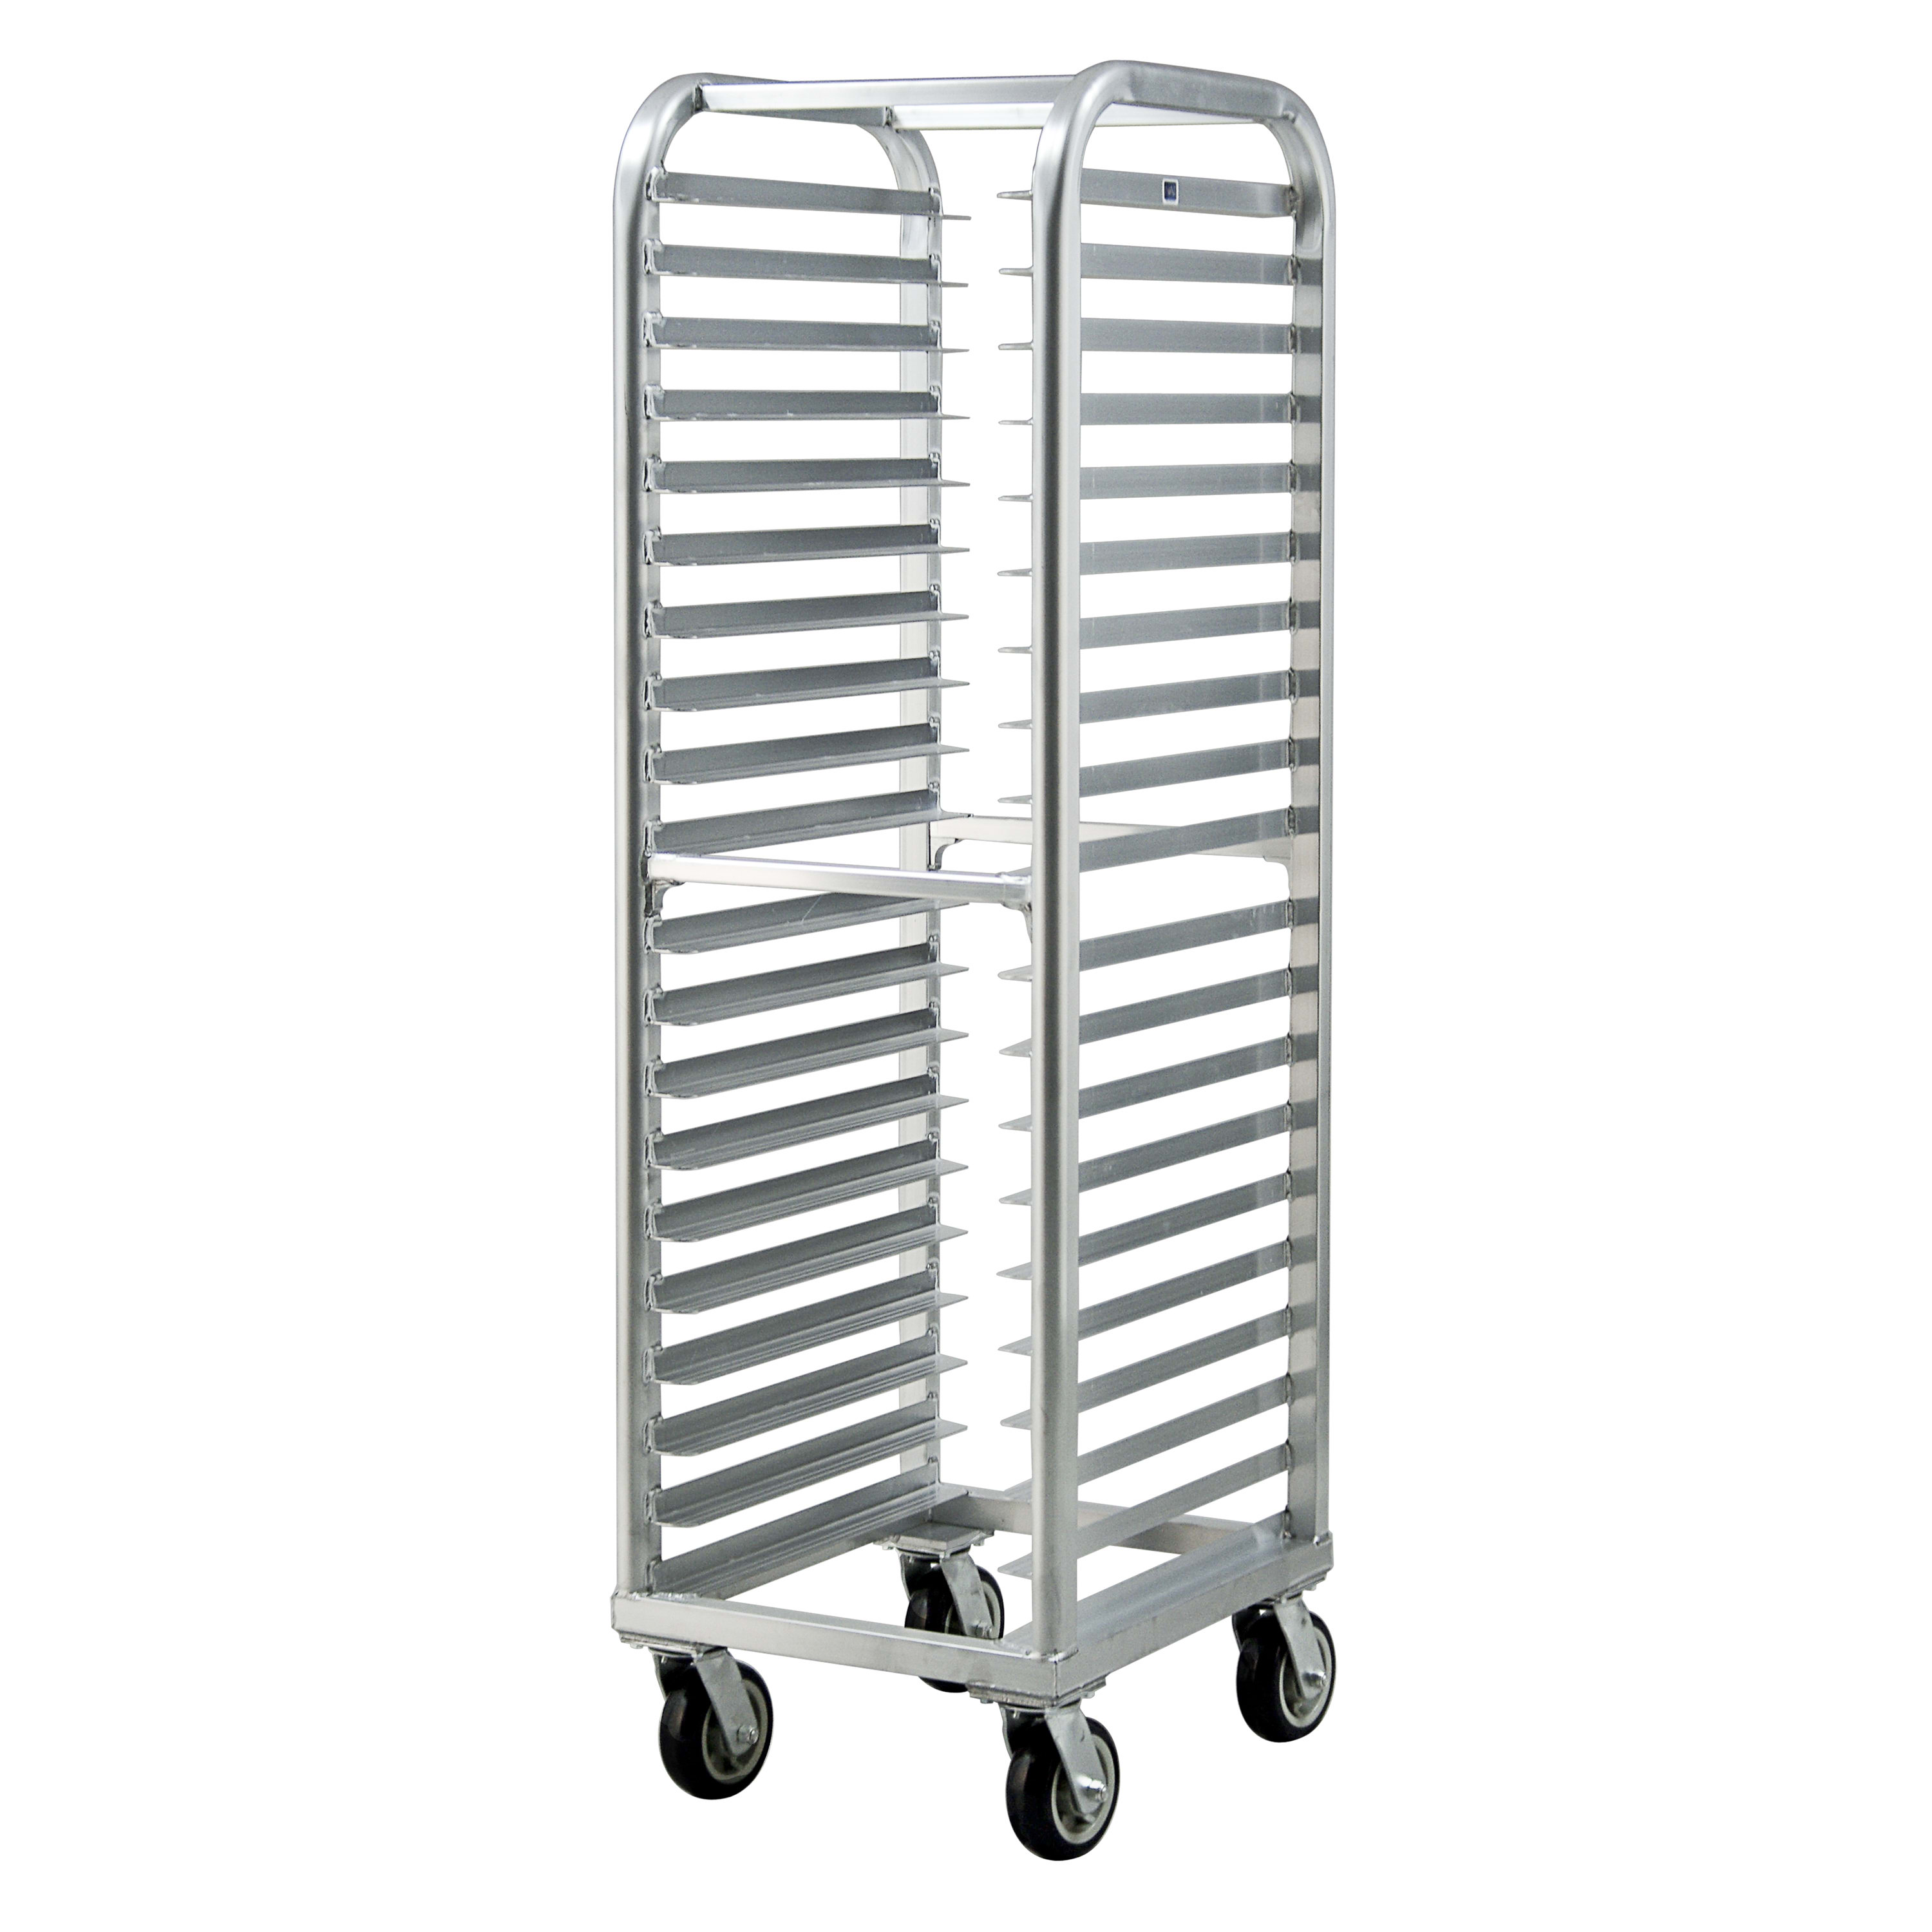 New Age 4331 21.5W 20-Bun Pan Rack w/ 3 Bottom Load Slides